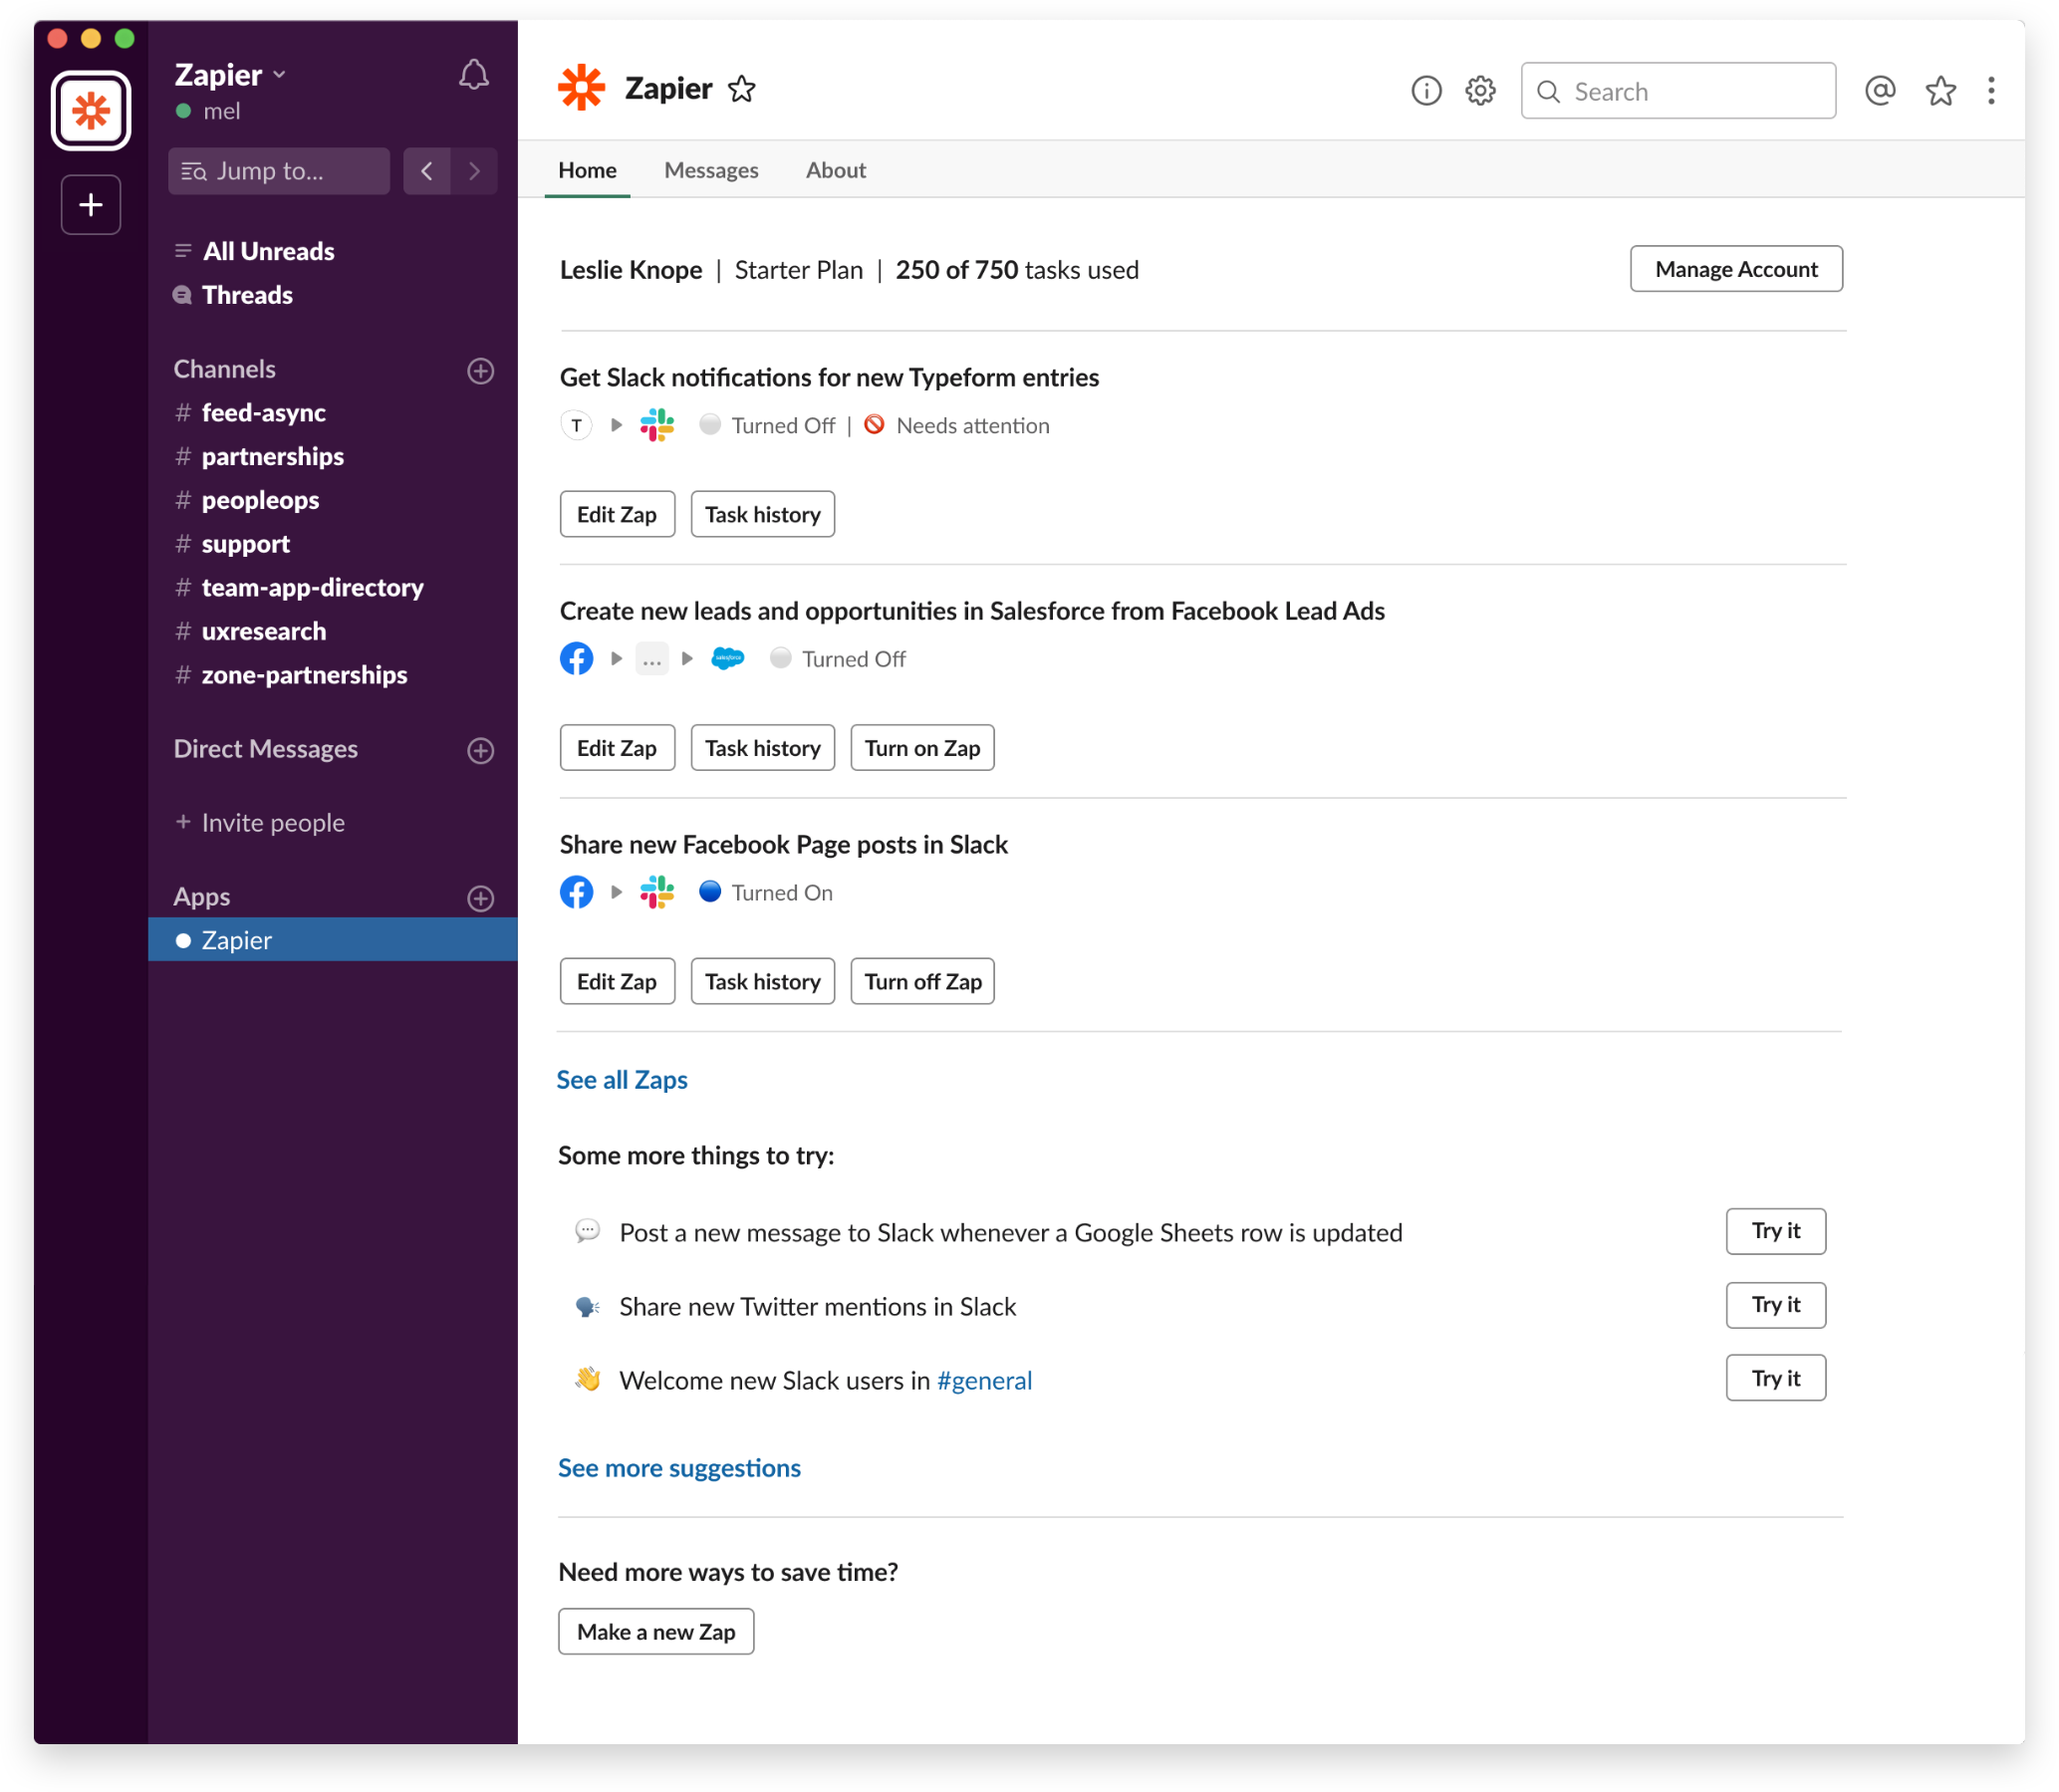 The app home tab for the Zapier app for Slack